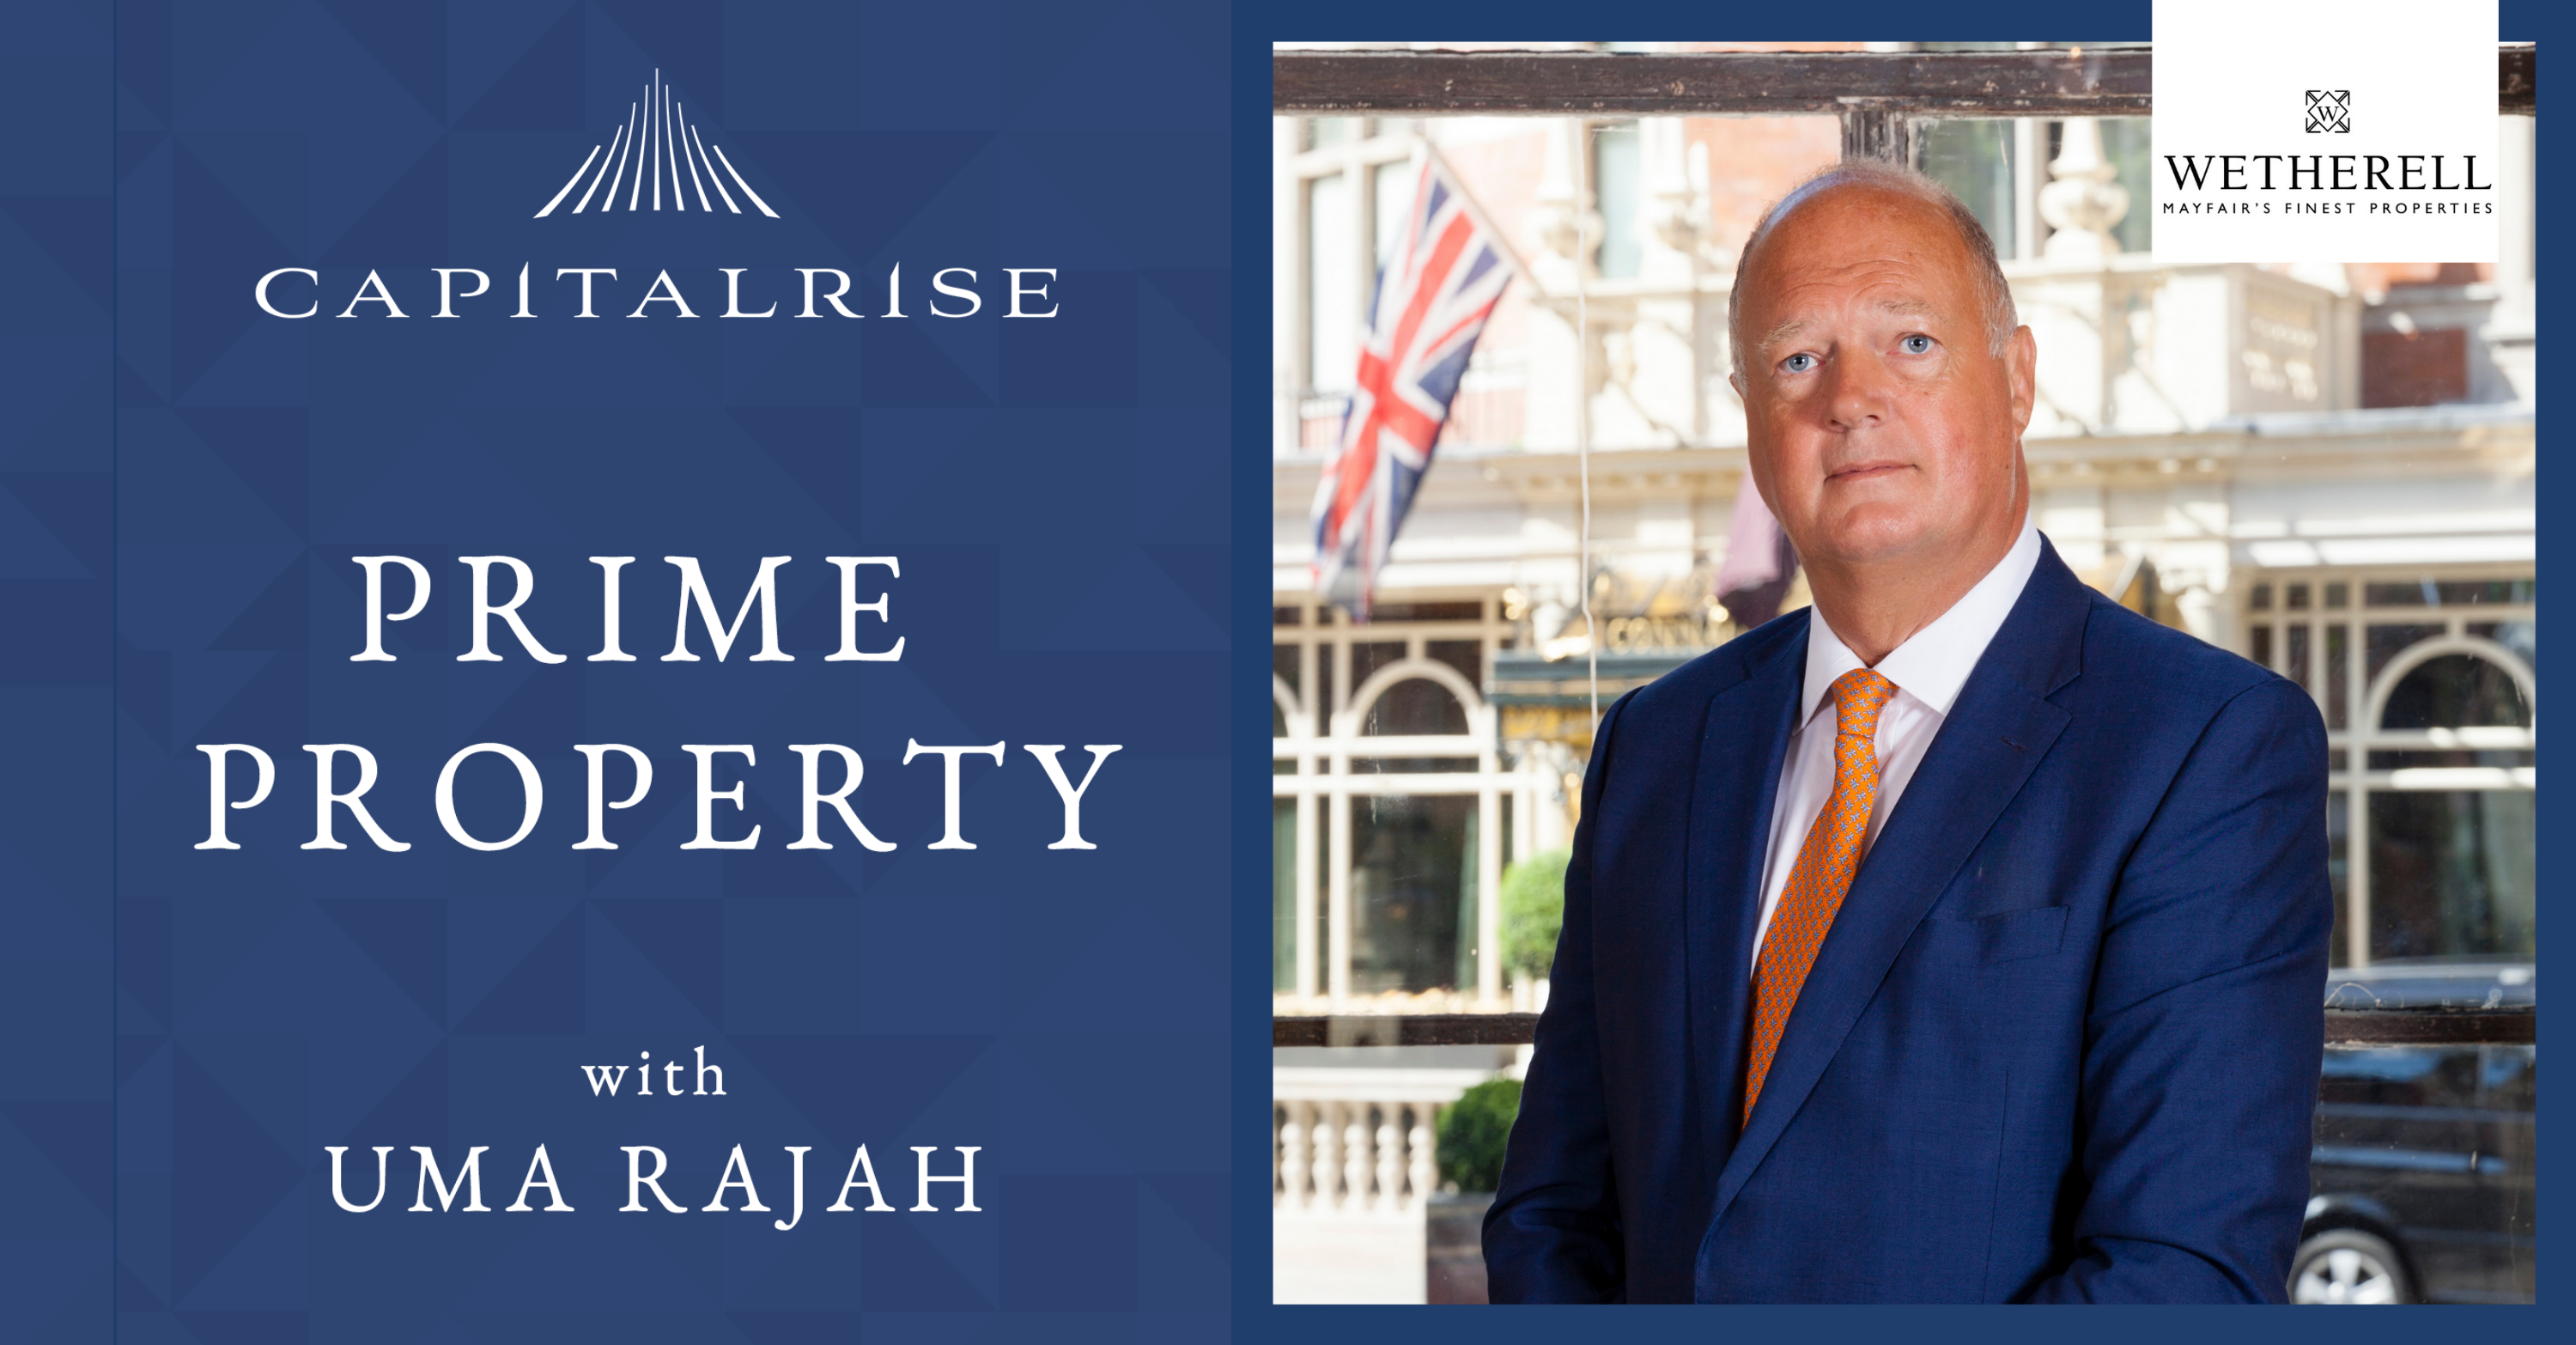 Prime property with Uma Rajah – Episode Four